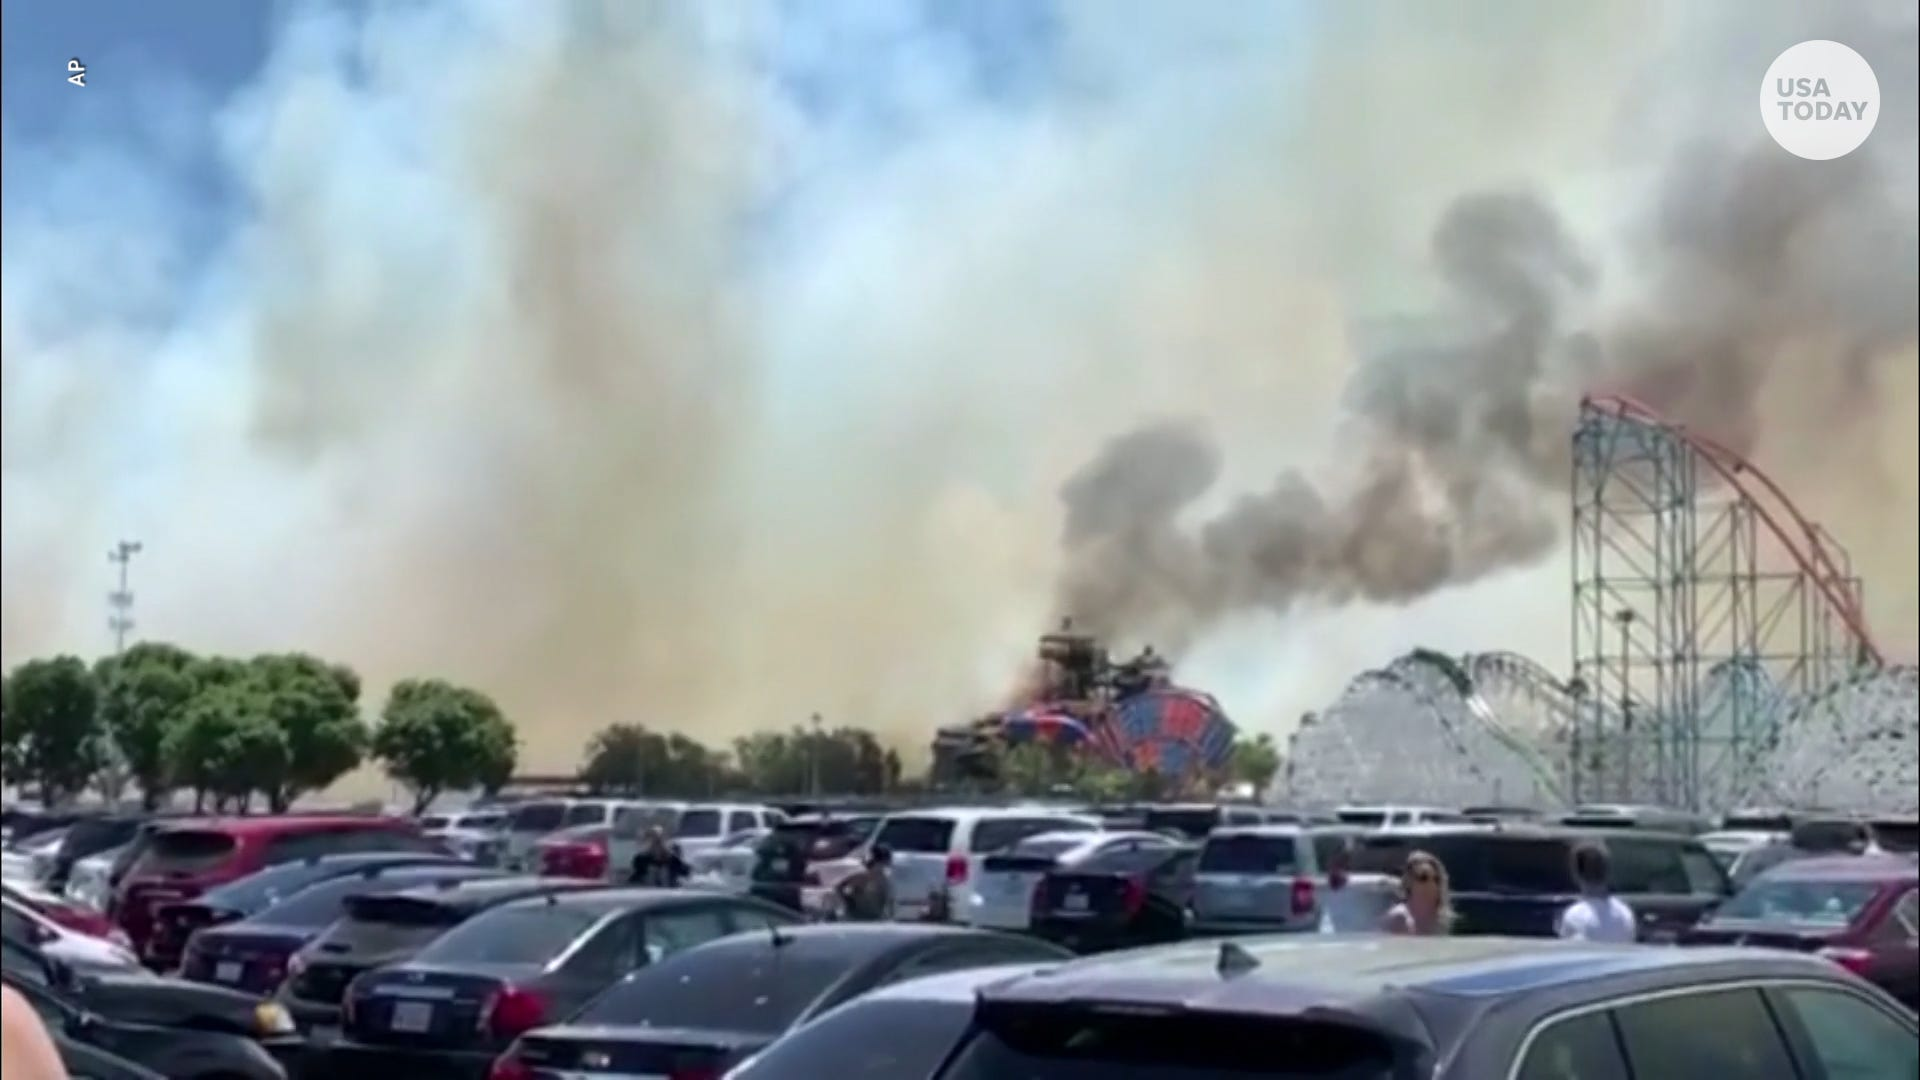 Fast-moving fire shuts down Six Flags park, sparks panic